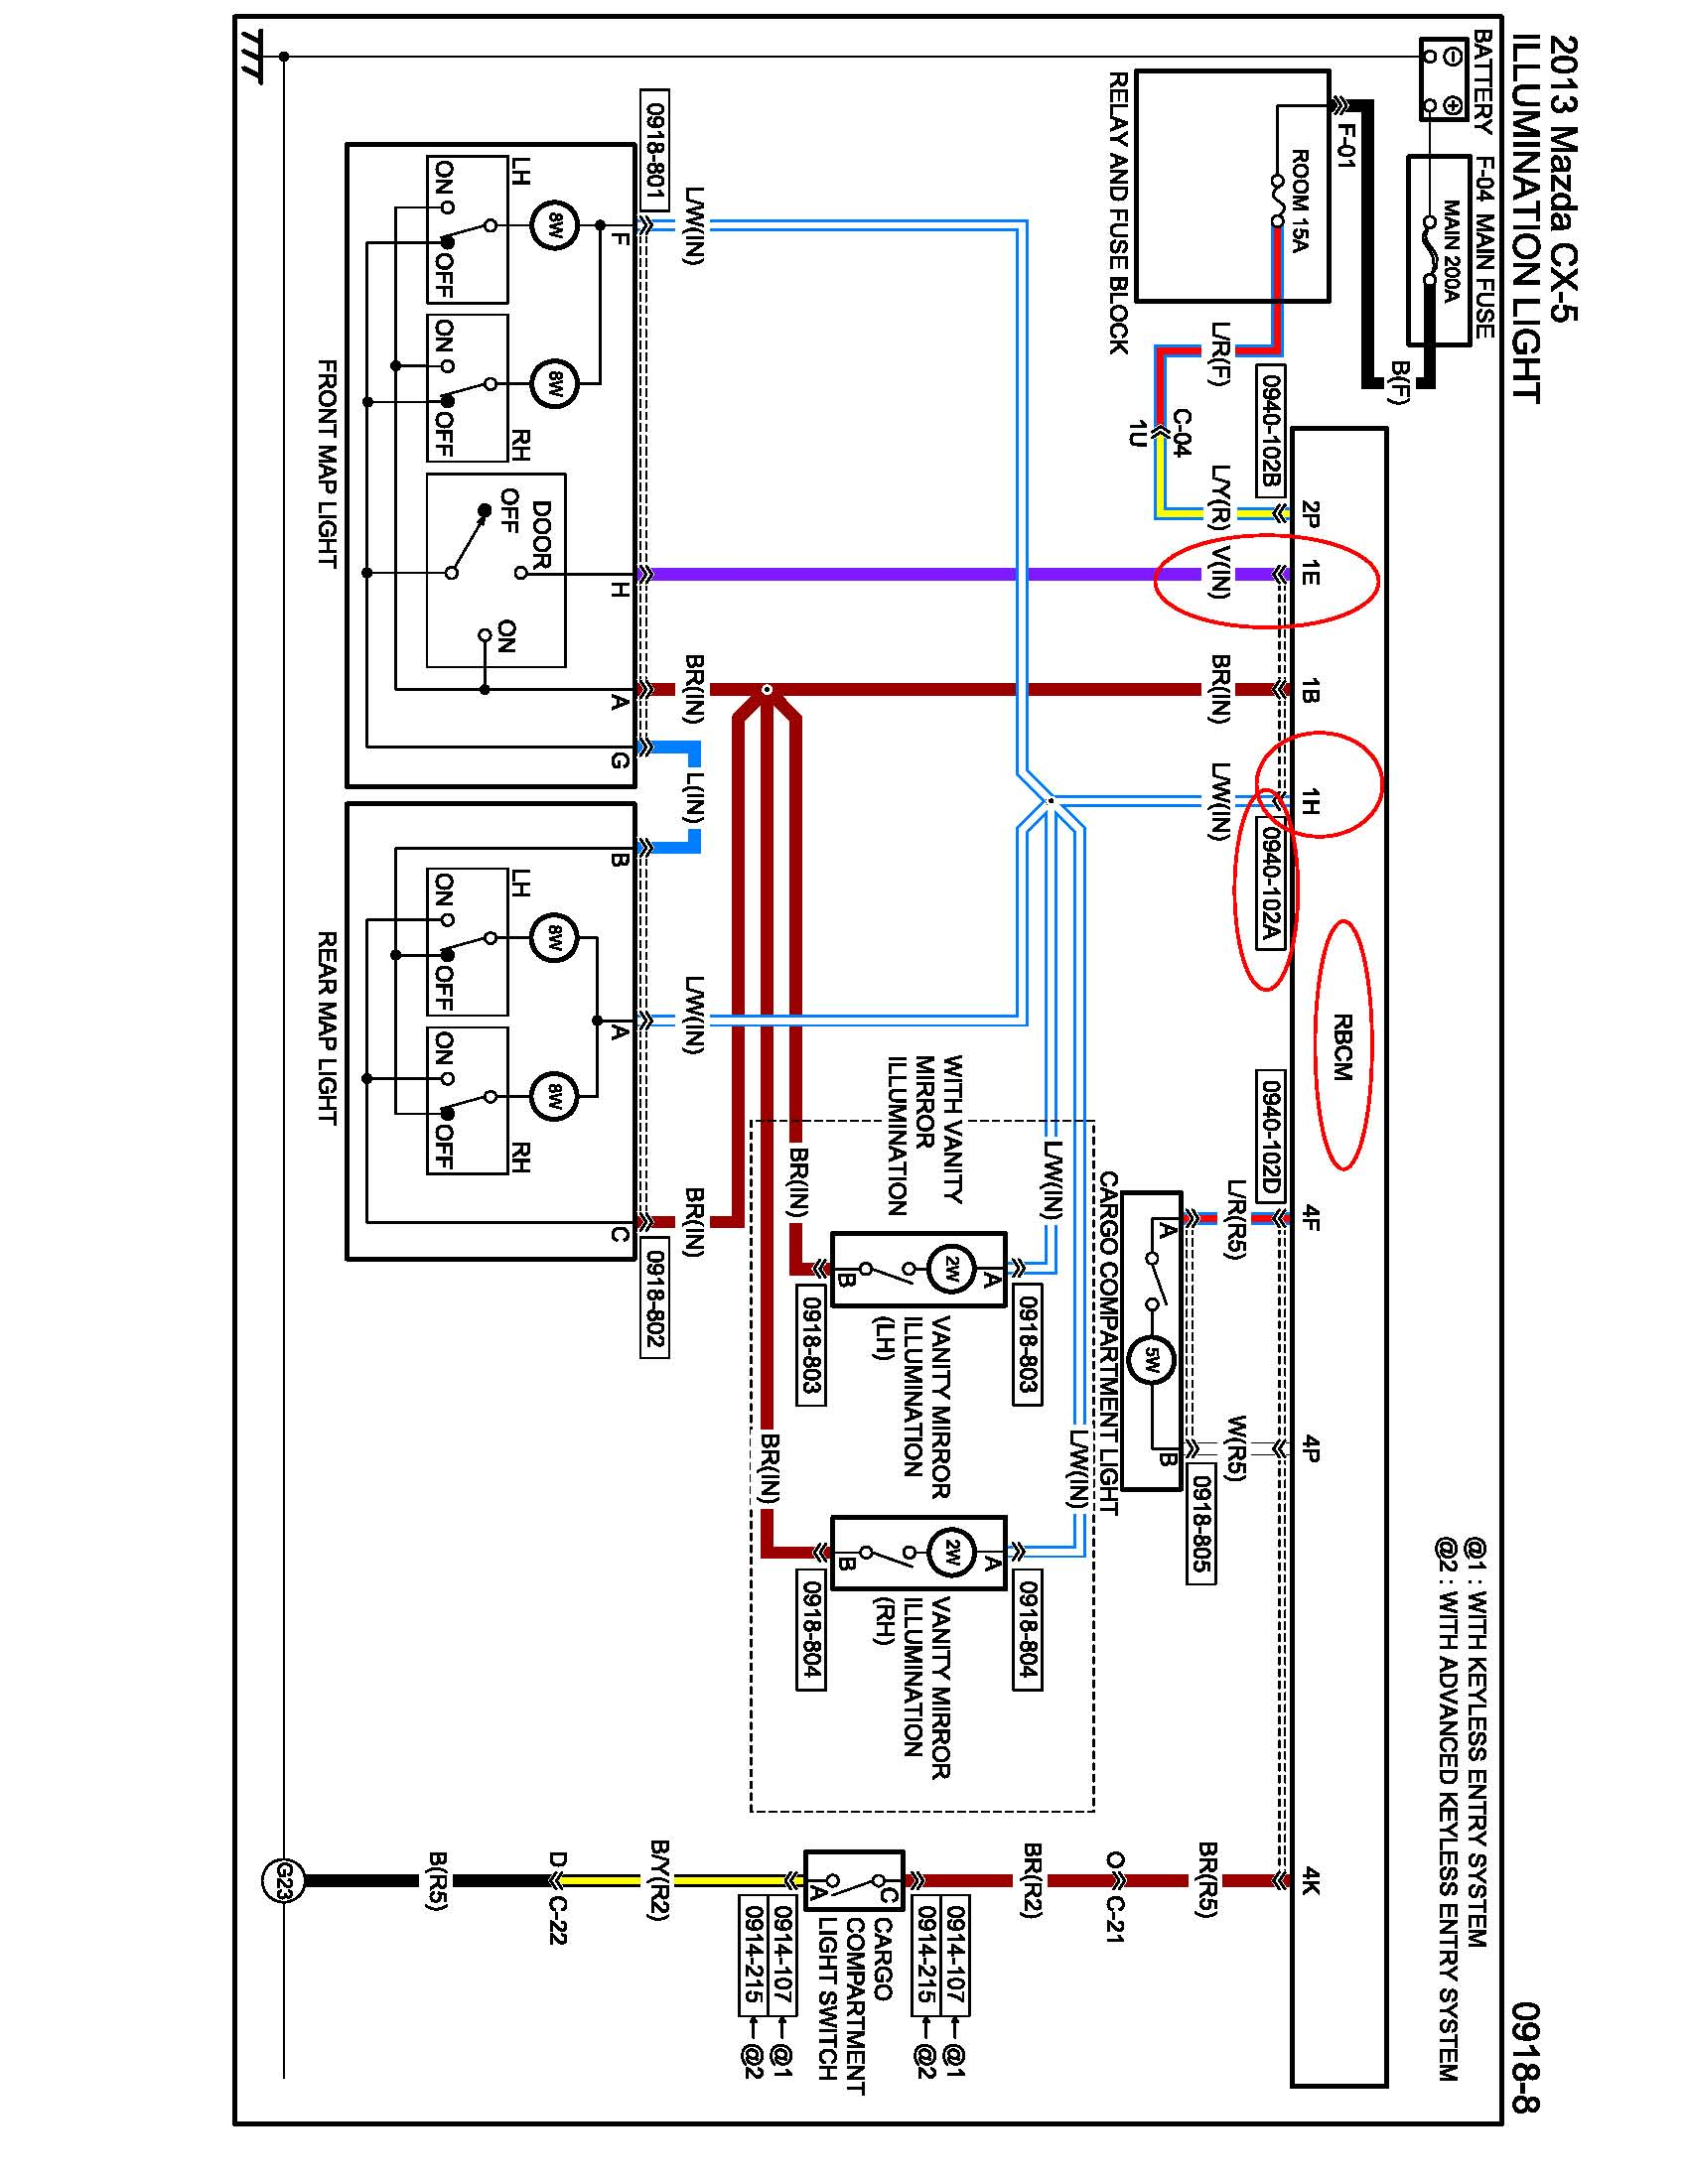 wiring diagram for xcrs 500m remote starter car security